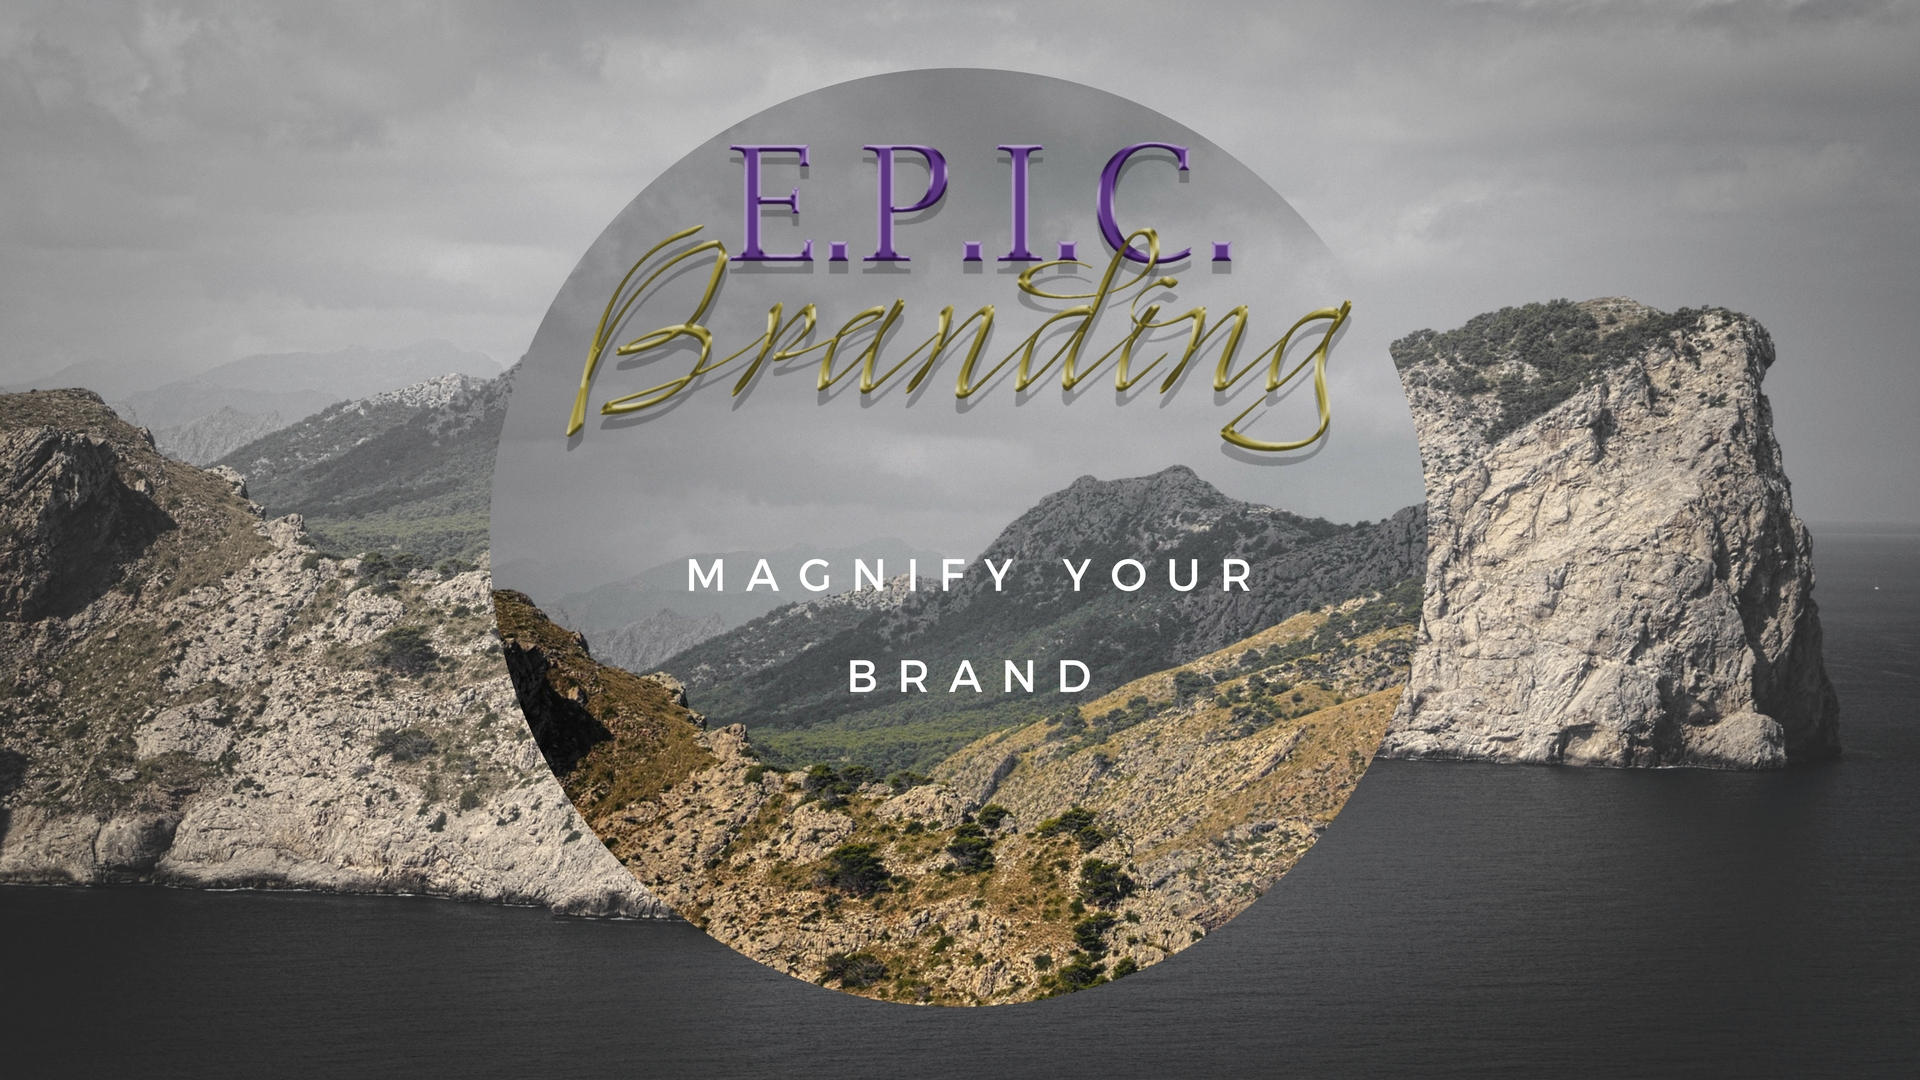 Magnify Your Brand